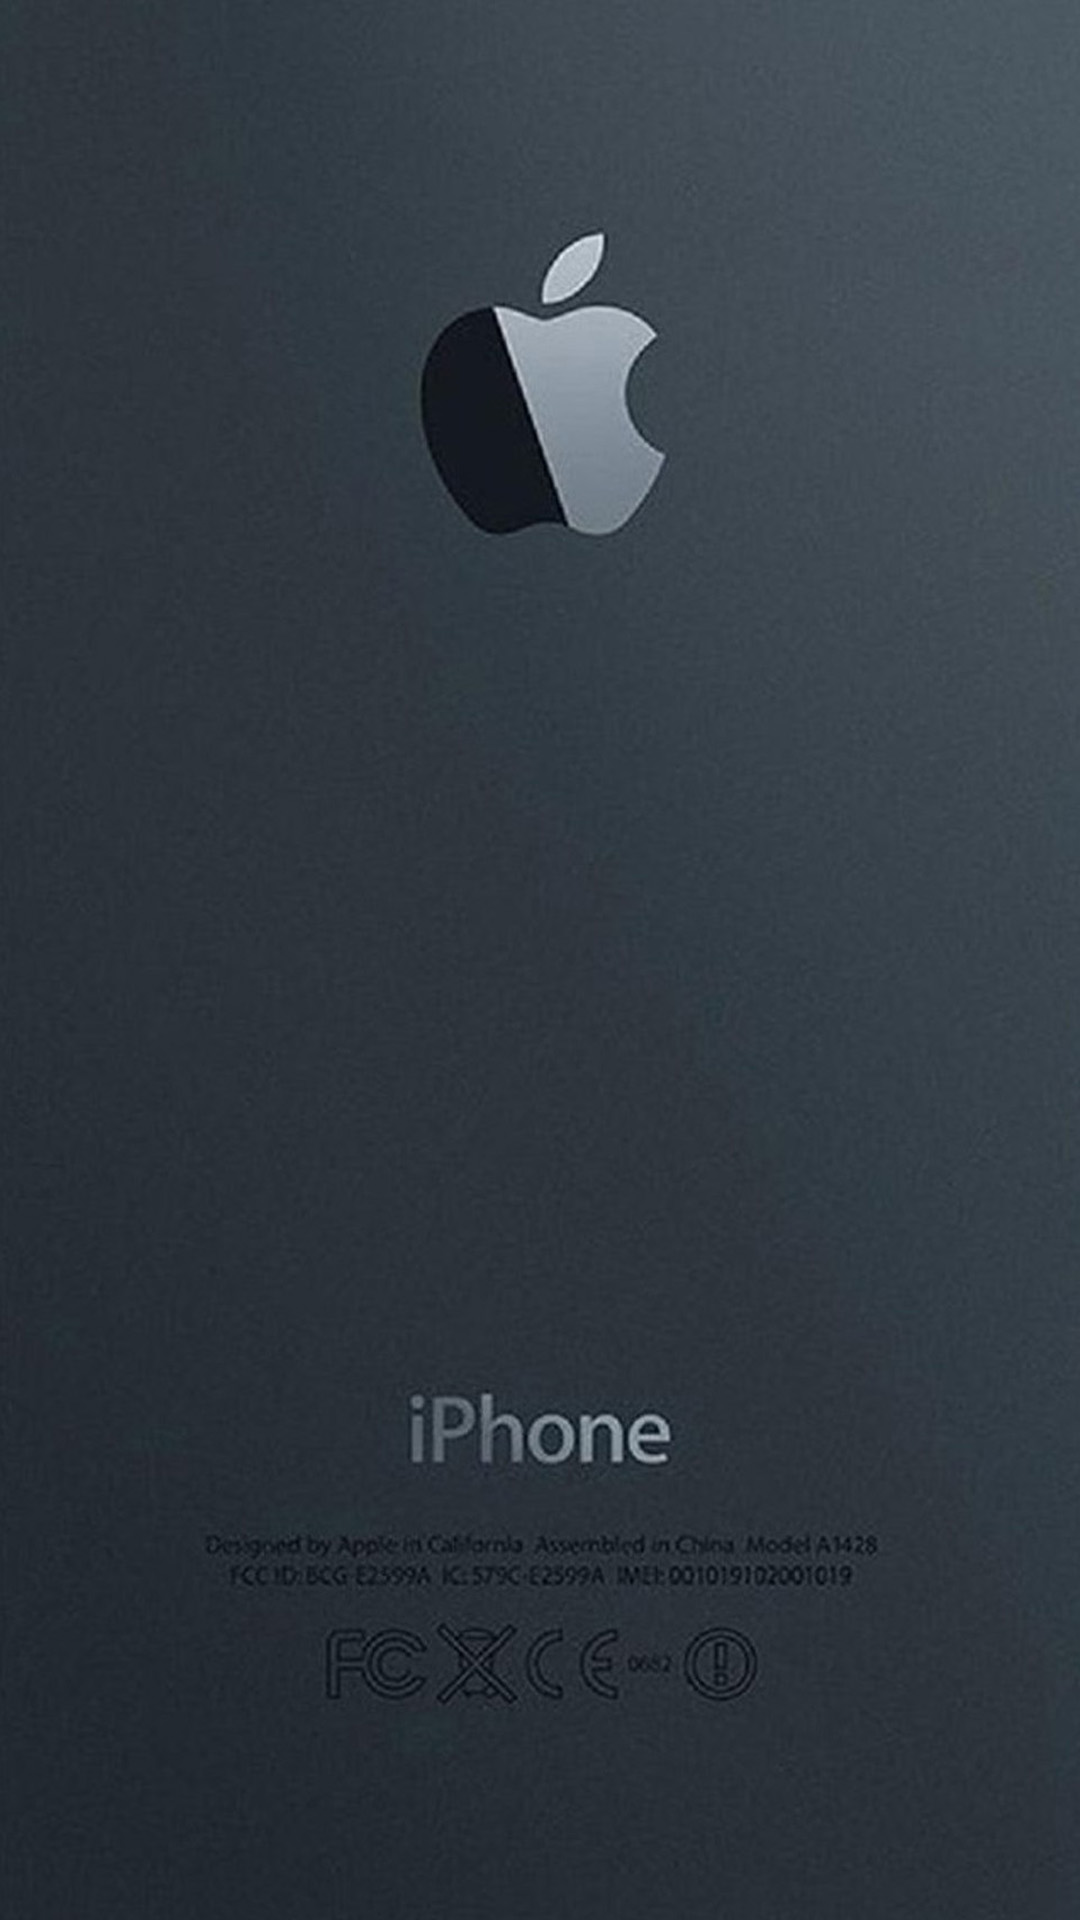 Apple Iphone Images Free Download - Apple Iphone Wallpaper Hd Download - HD Wallpaper